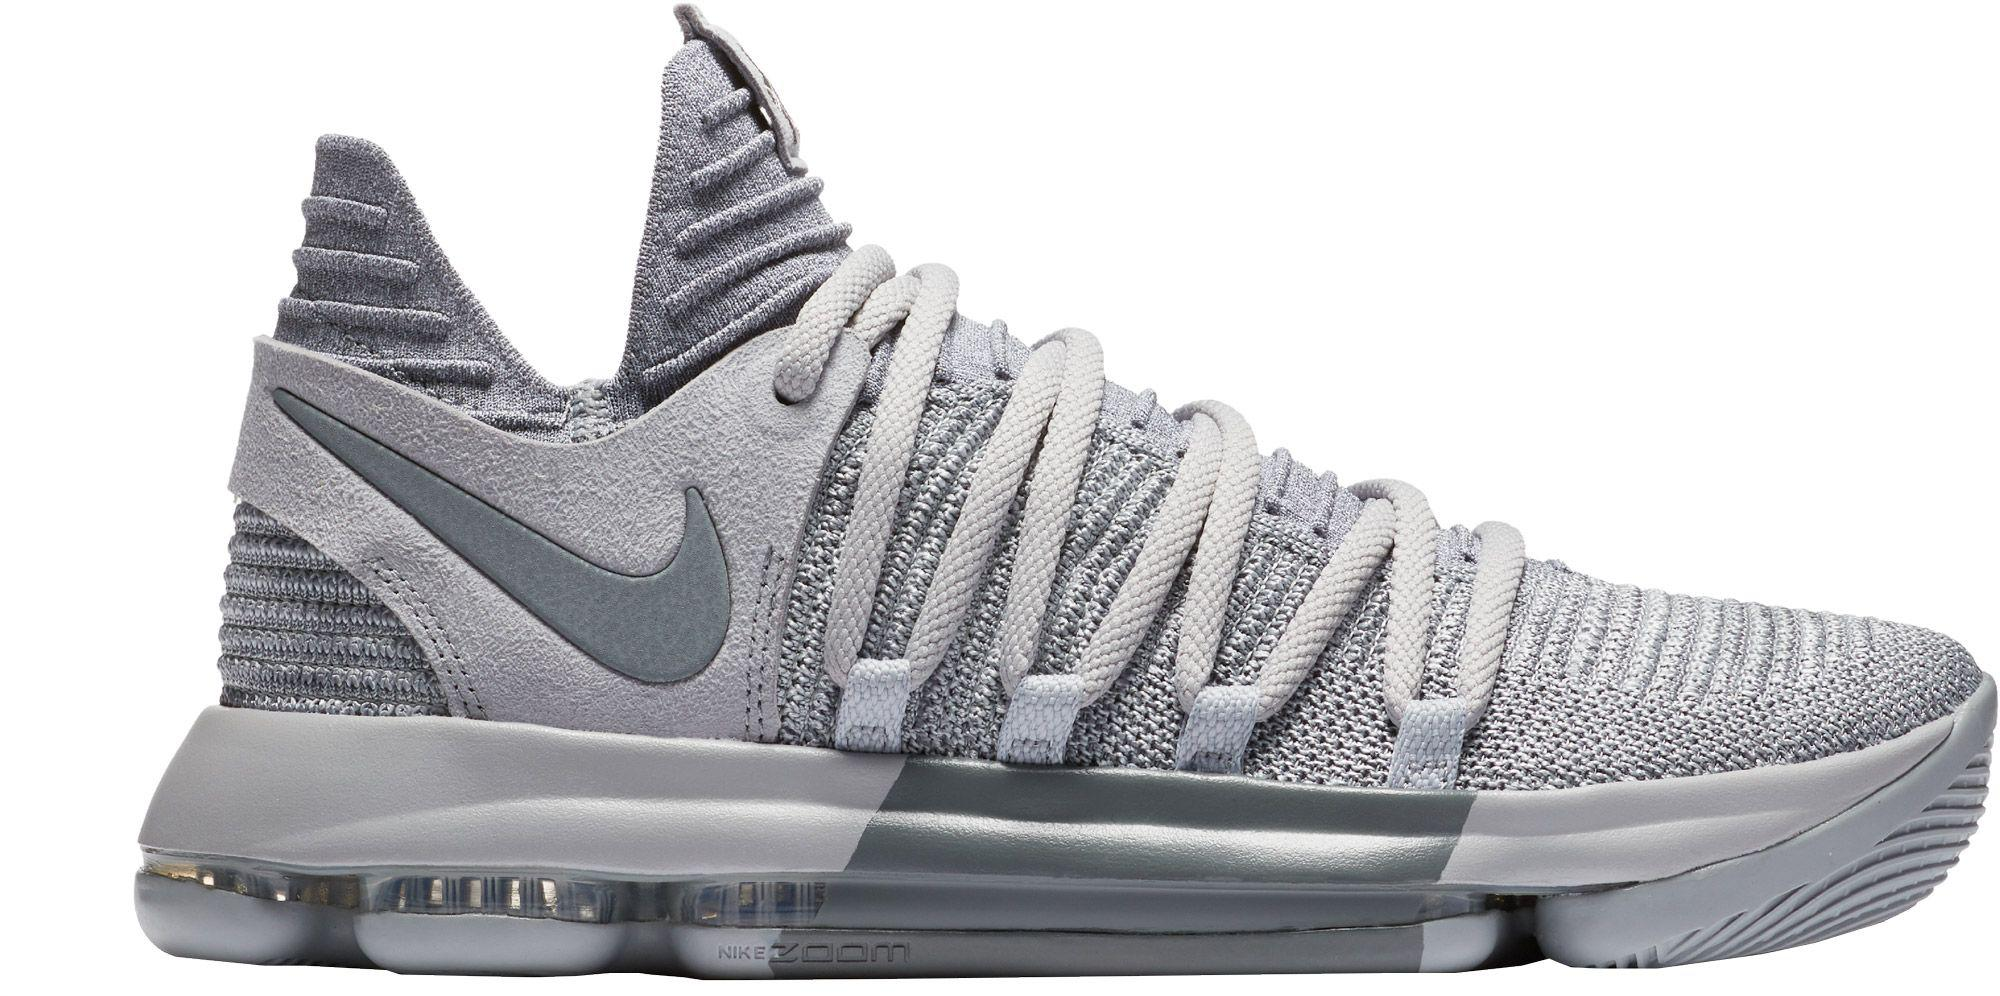 5b009c9c37 nike-GreyGrey-Zoom-Kd-10-Basketball-Shoes.jpeg